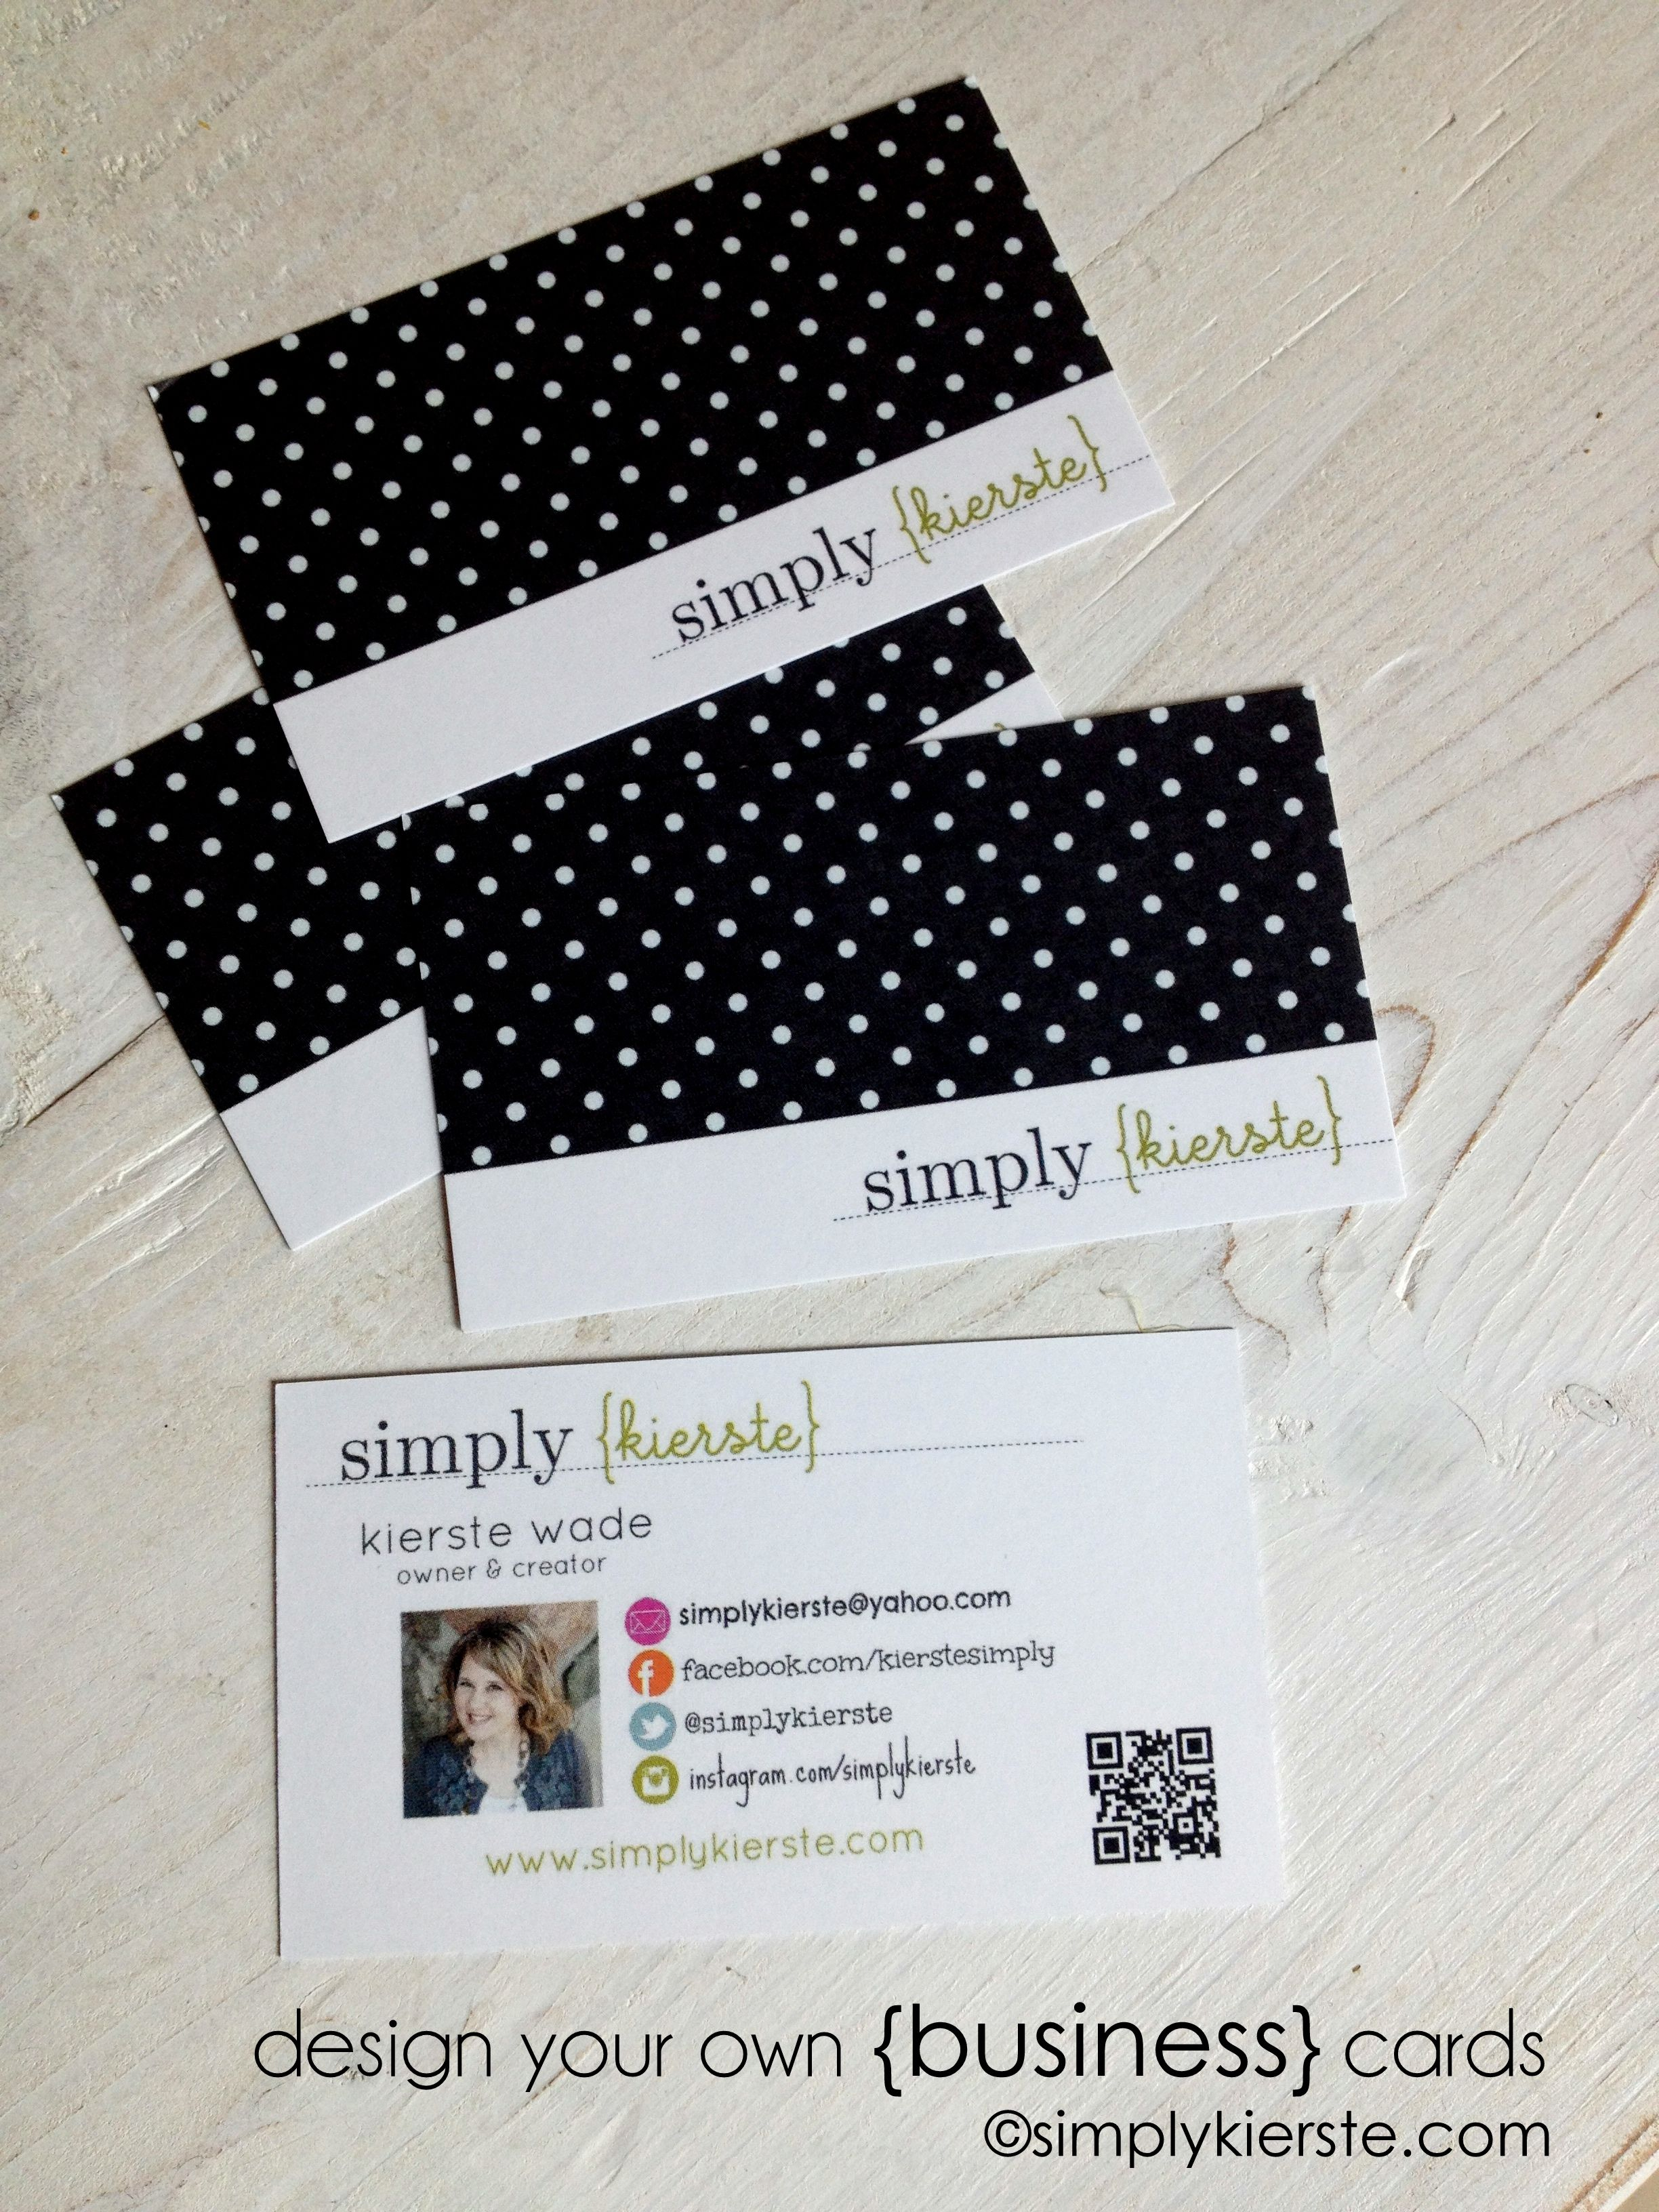 How To Design Your Own Business Cards Diy Pinterest Business